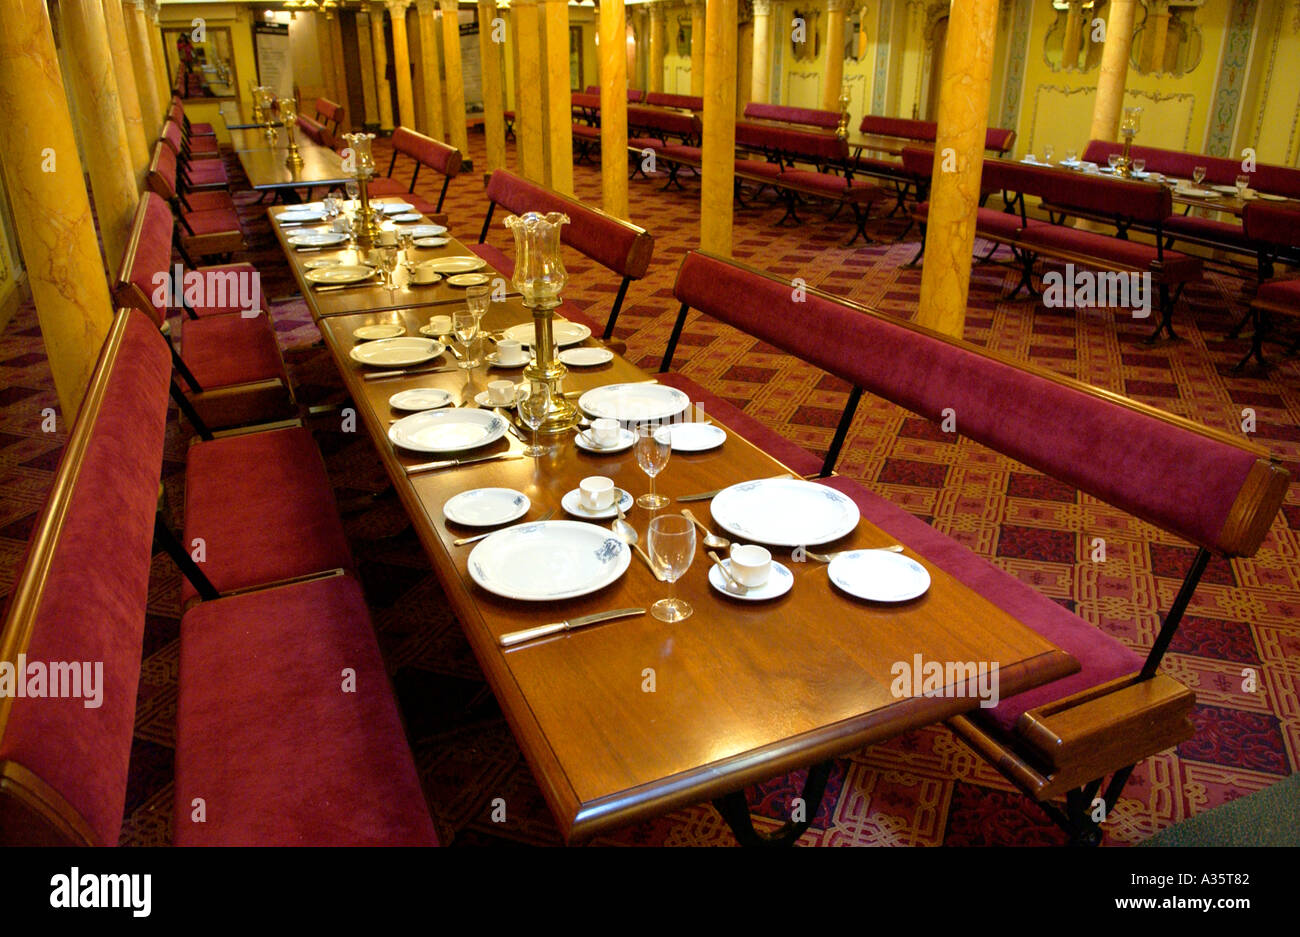 Restored First Class Dining Saloon of the SS Great Britain built by Victorian engineer Isambard Kingdom Brunel - Stock Image